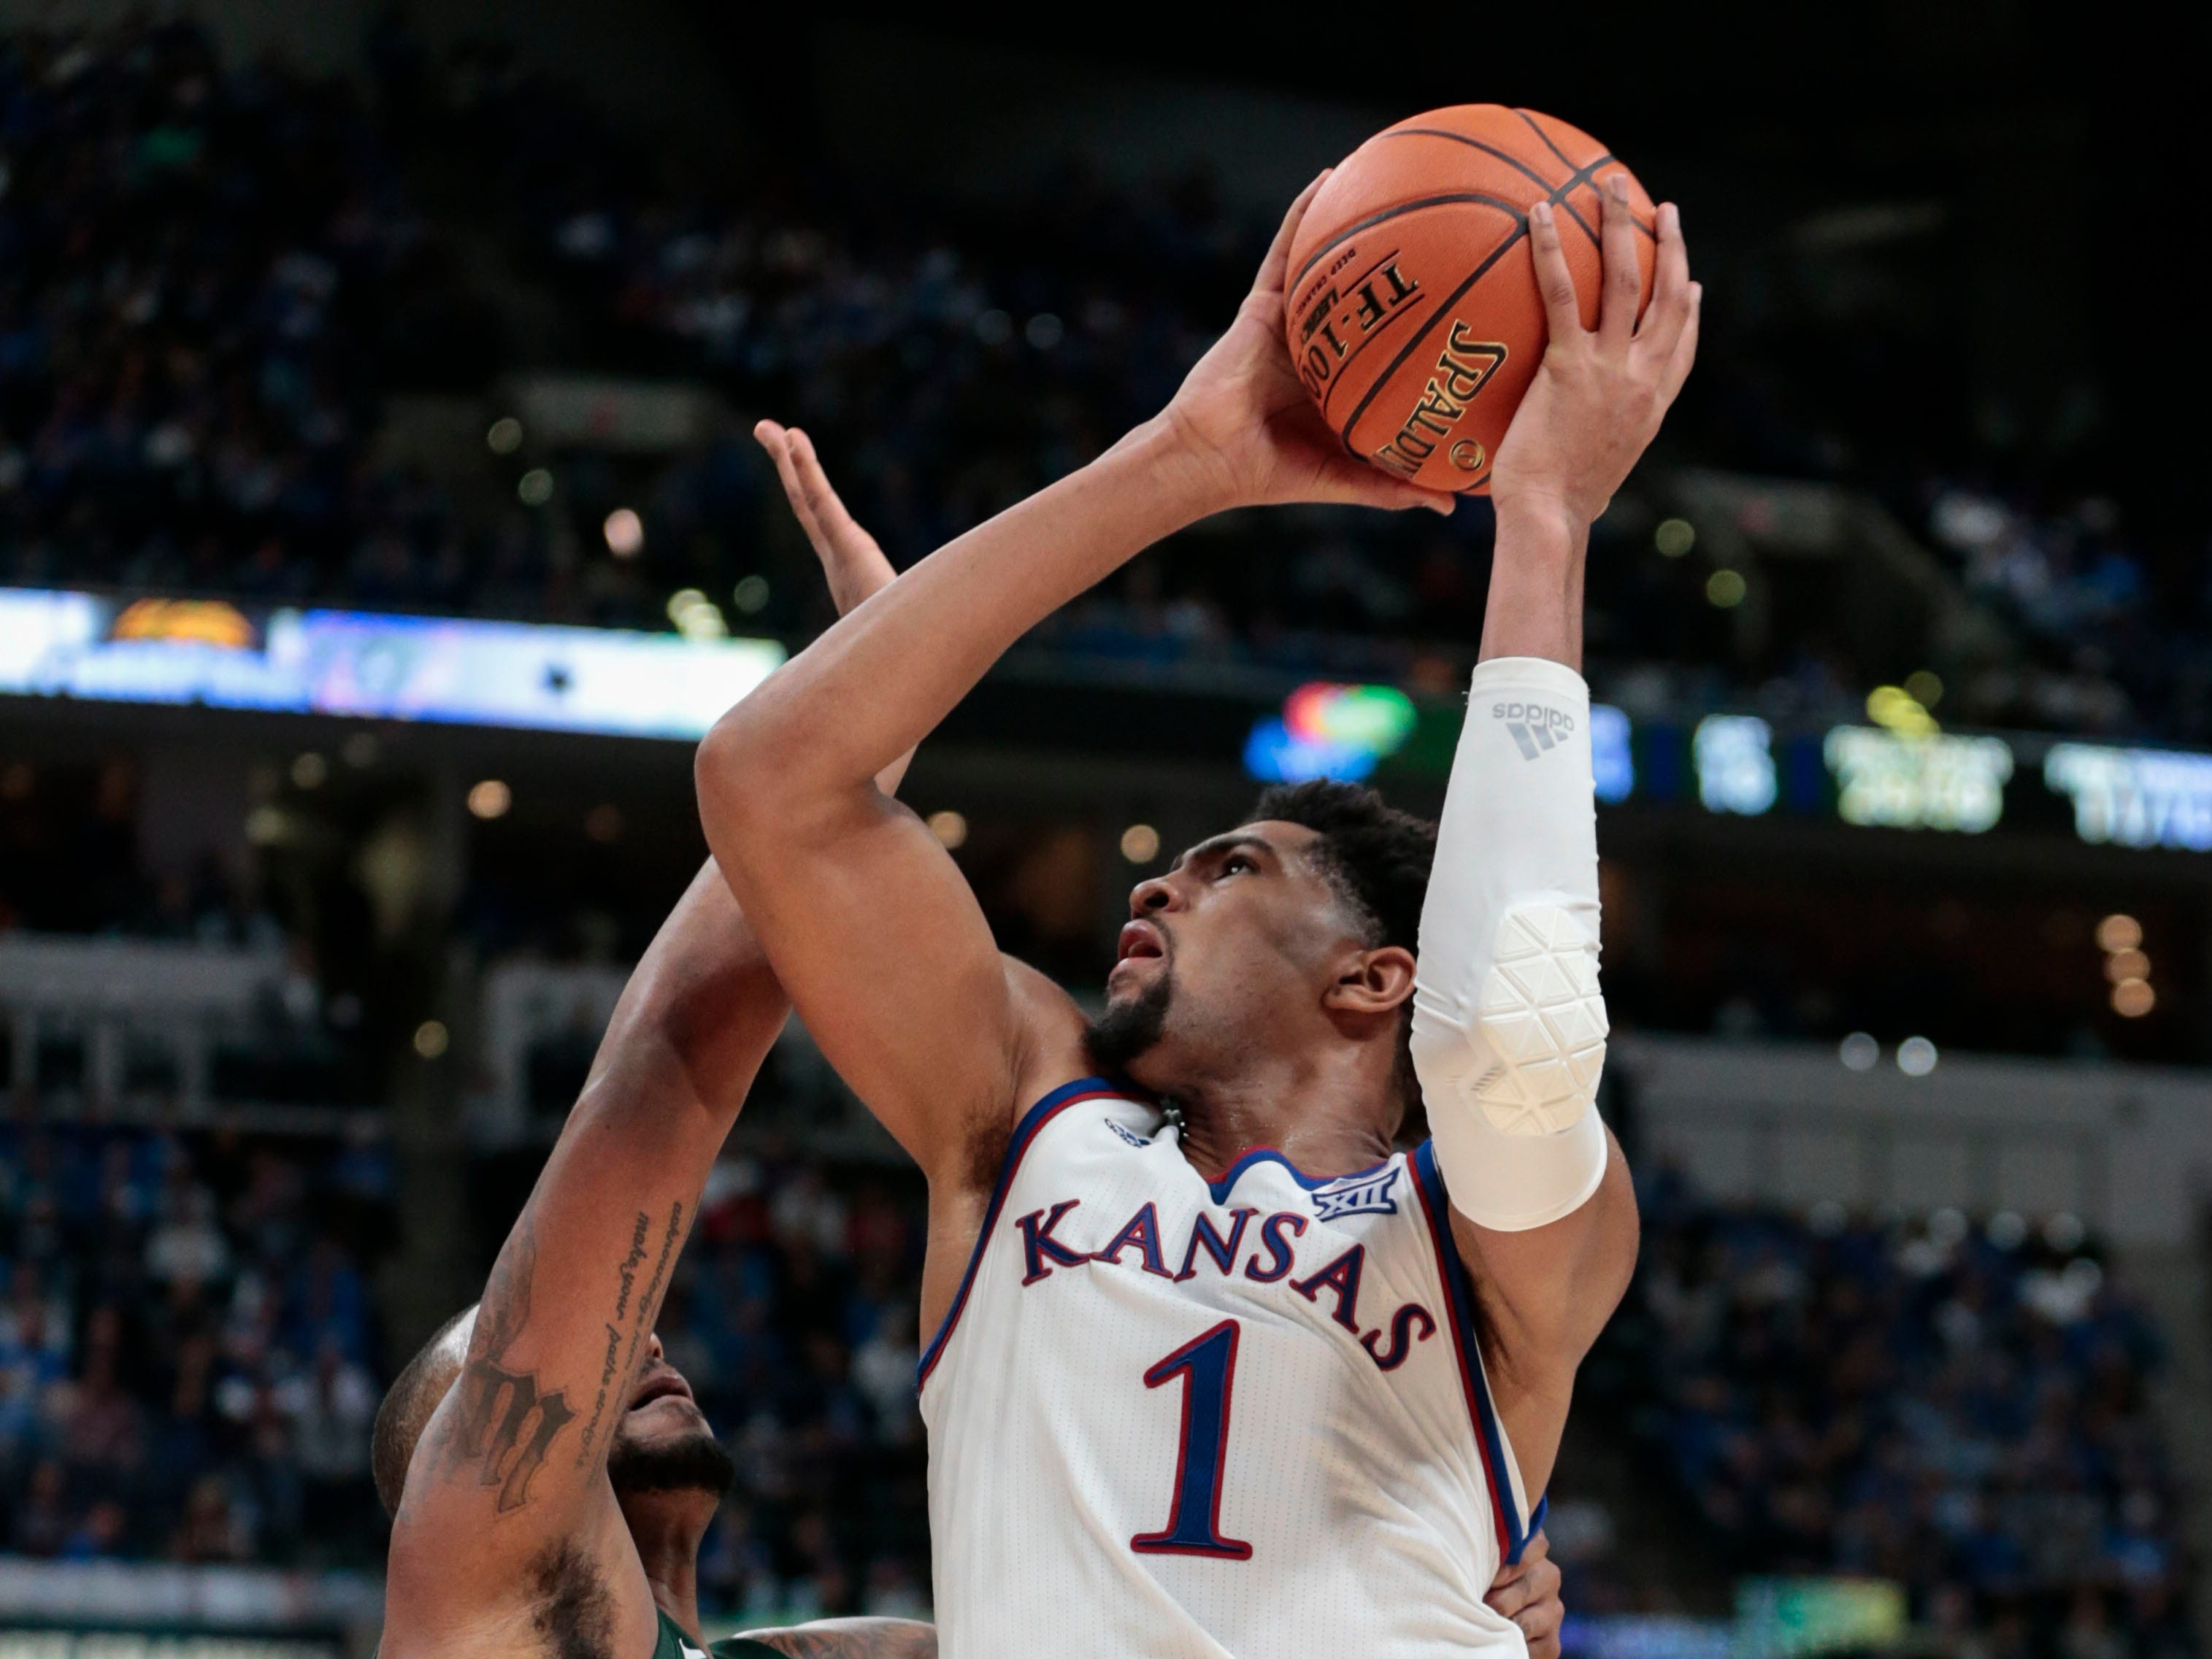 Kansas forward Dedric Lawson (1) shoots over Michigan State forward Nick Ward (44) during the second half of an NCAA college basketball game at the Champions Classic in Indianapolis on Tuesday, Nov. 6, 2018. Kansas won 92-87.